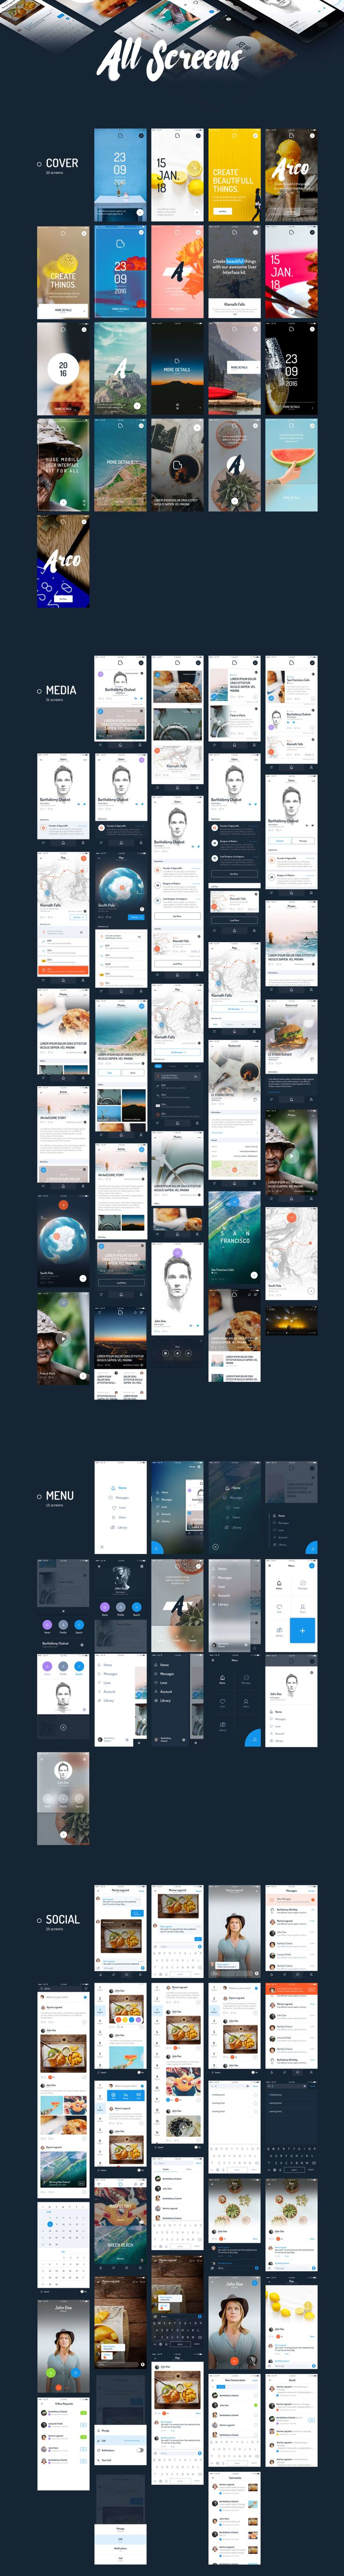 Create beautiful things with our awesome User Interface kit. It comes with 200 unique screens. Arco is a modern, clean and minimalistic UI Kit to upgrade your projects with over 800 elements to choose. Everything was made with a detail oriented style and followed by today's web trends. Layers are well-organized, carefully named and grouped.